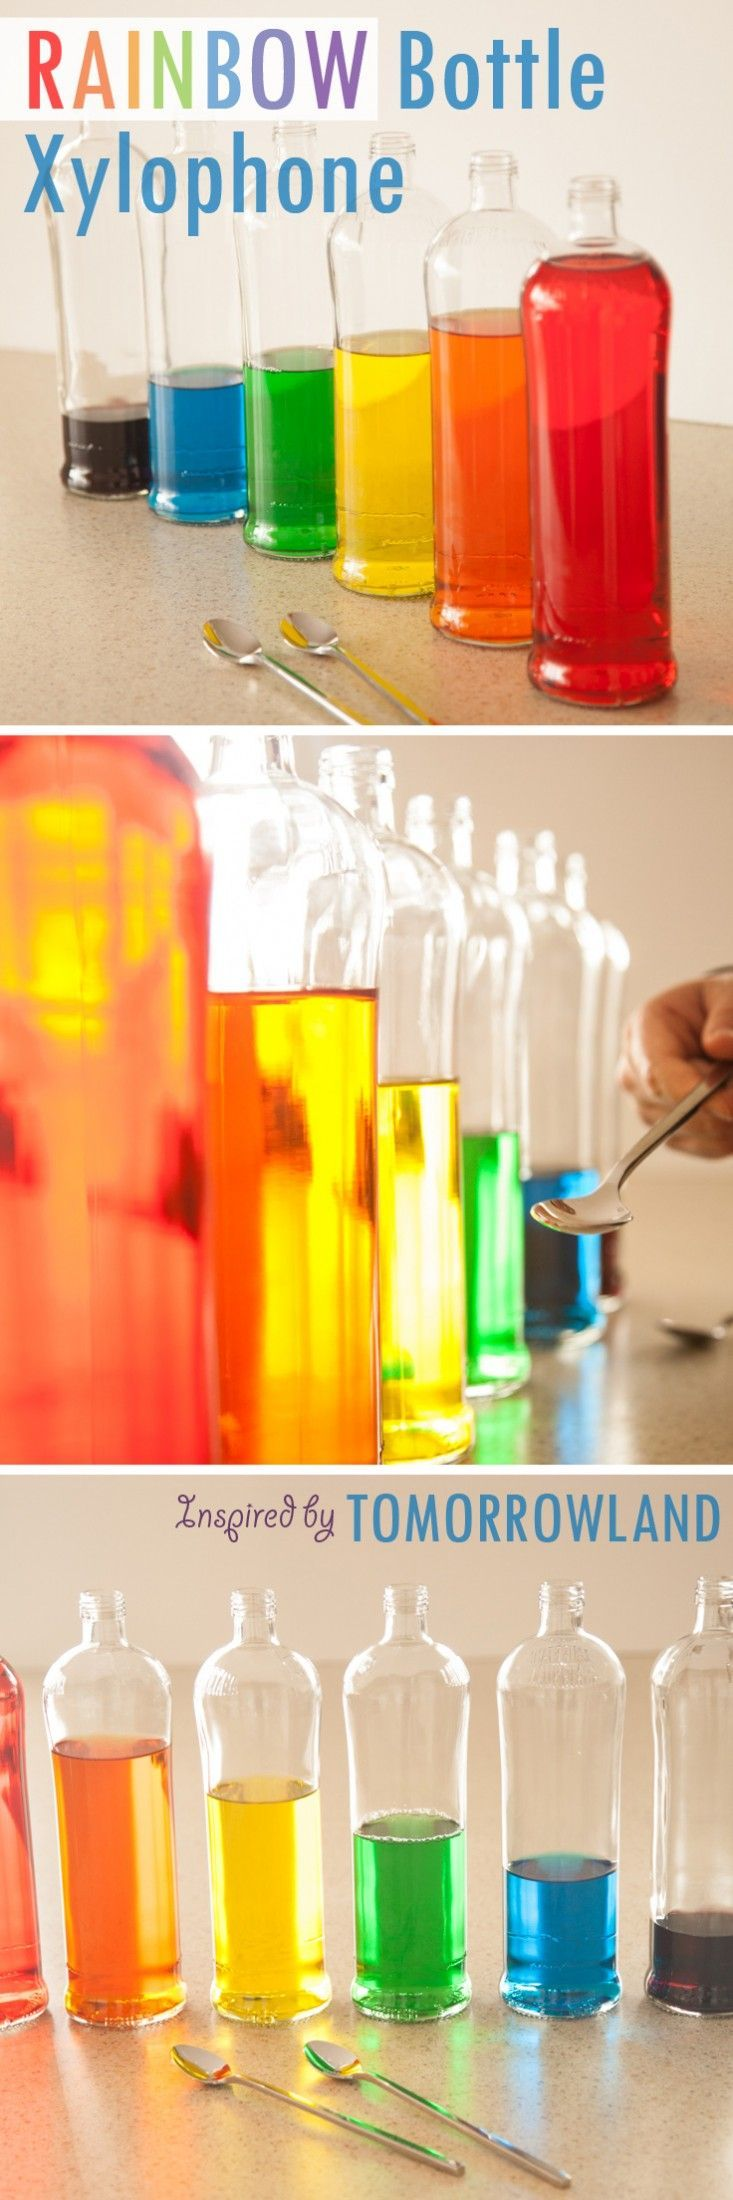 """DIY Rainbow Glass Bottle Water Xylophone - fun for the whole family to play, especially young musicians and dreamers! Inspired by Disney""""s Tomorrowland film."""